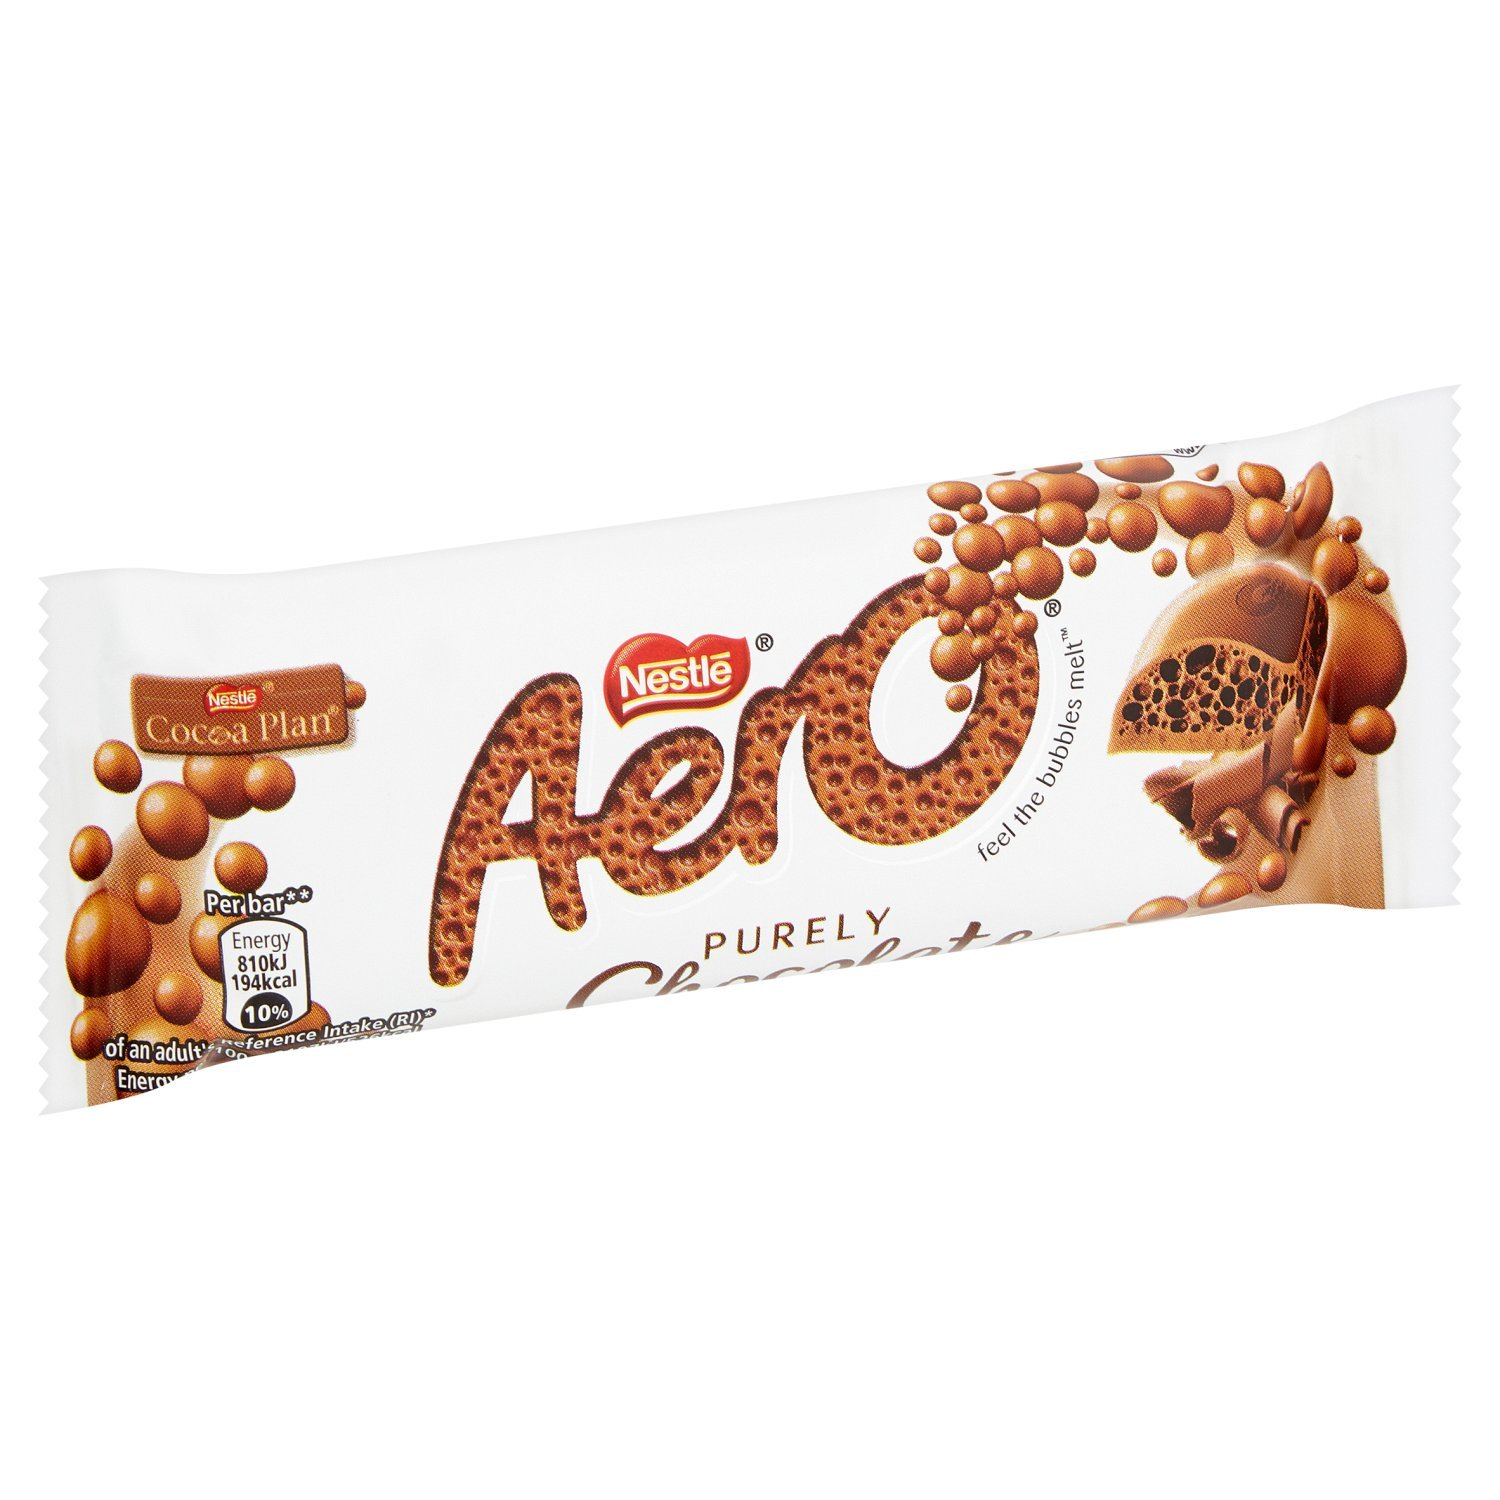 Aero Milk Chocolate Bar, 36 g, Pack of 36: Amazon.es: Alimentación y bebidas